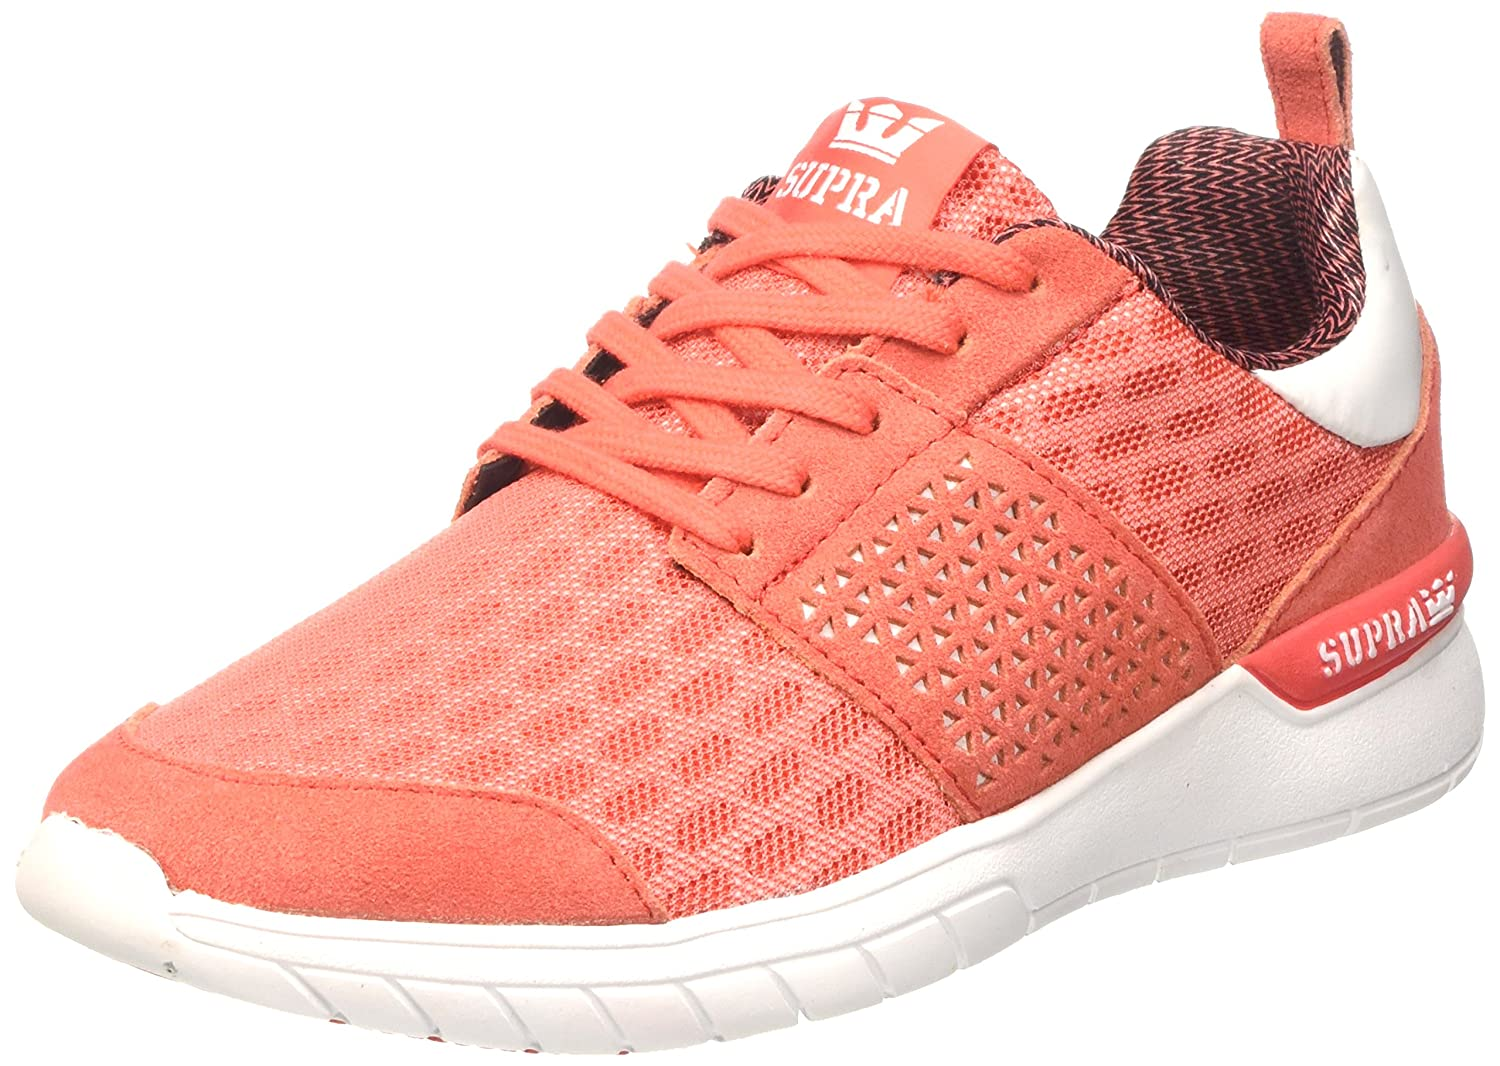 Supra Women's Scissor '18 Shoes B01IFMDG0A 7 B(M) US|Coral/White